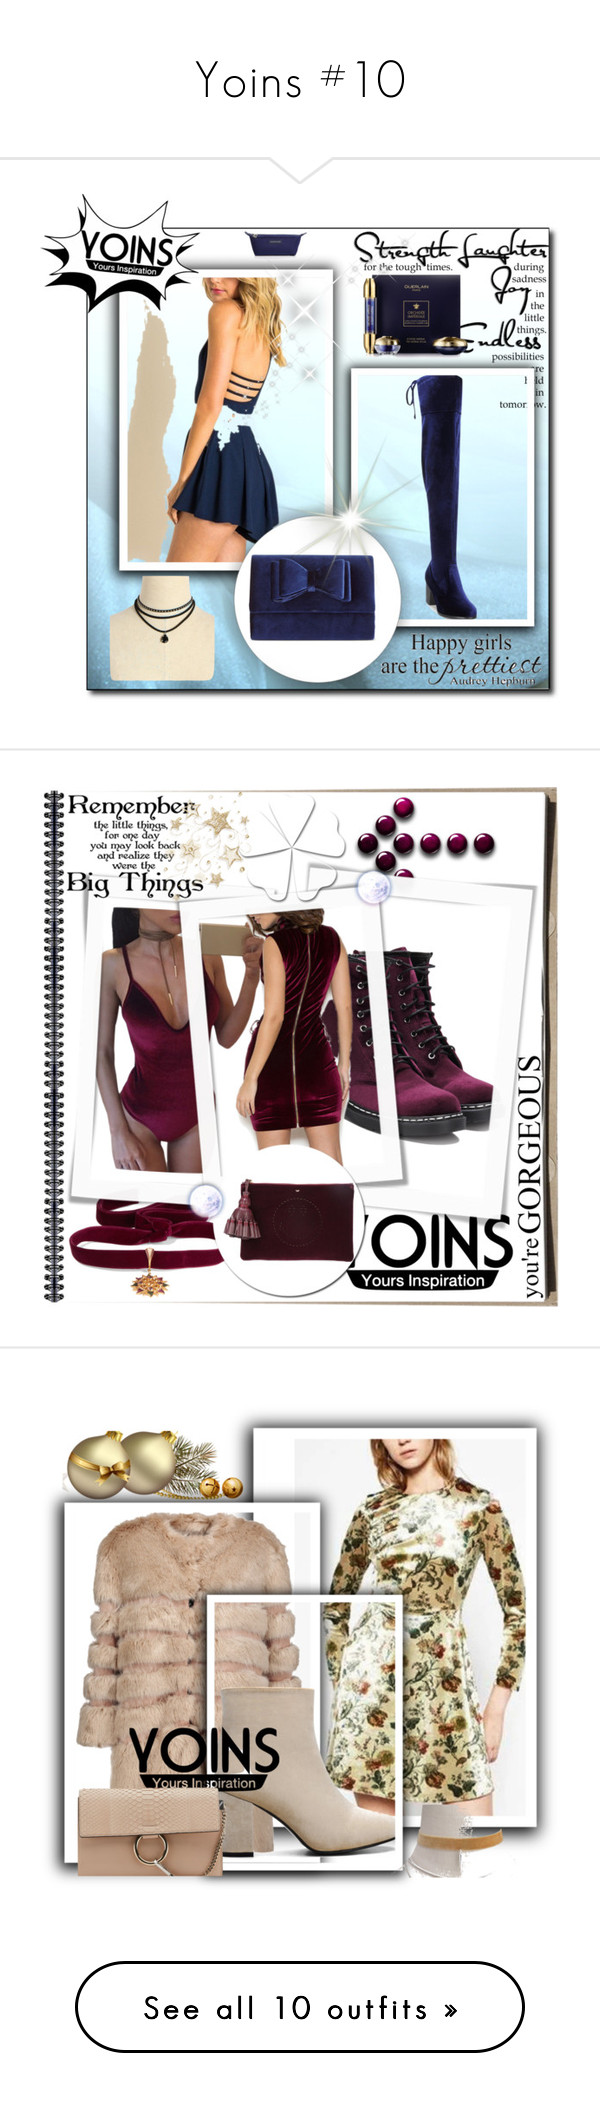 """""""Yoins #10"""" by soofficial87 ❤ liked on Polyvore featuring yoins, yoinscollection, loveyoins, WALL, Jimmy Choo, Proenza Schouler, GALA and Kendall + Kylie"""